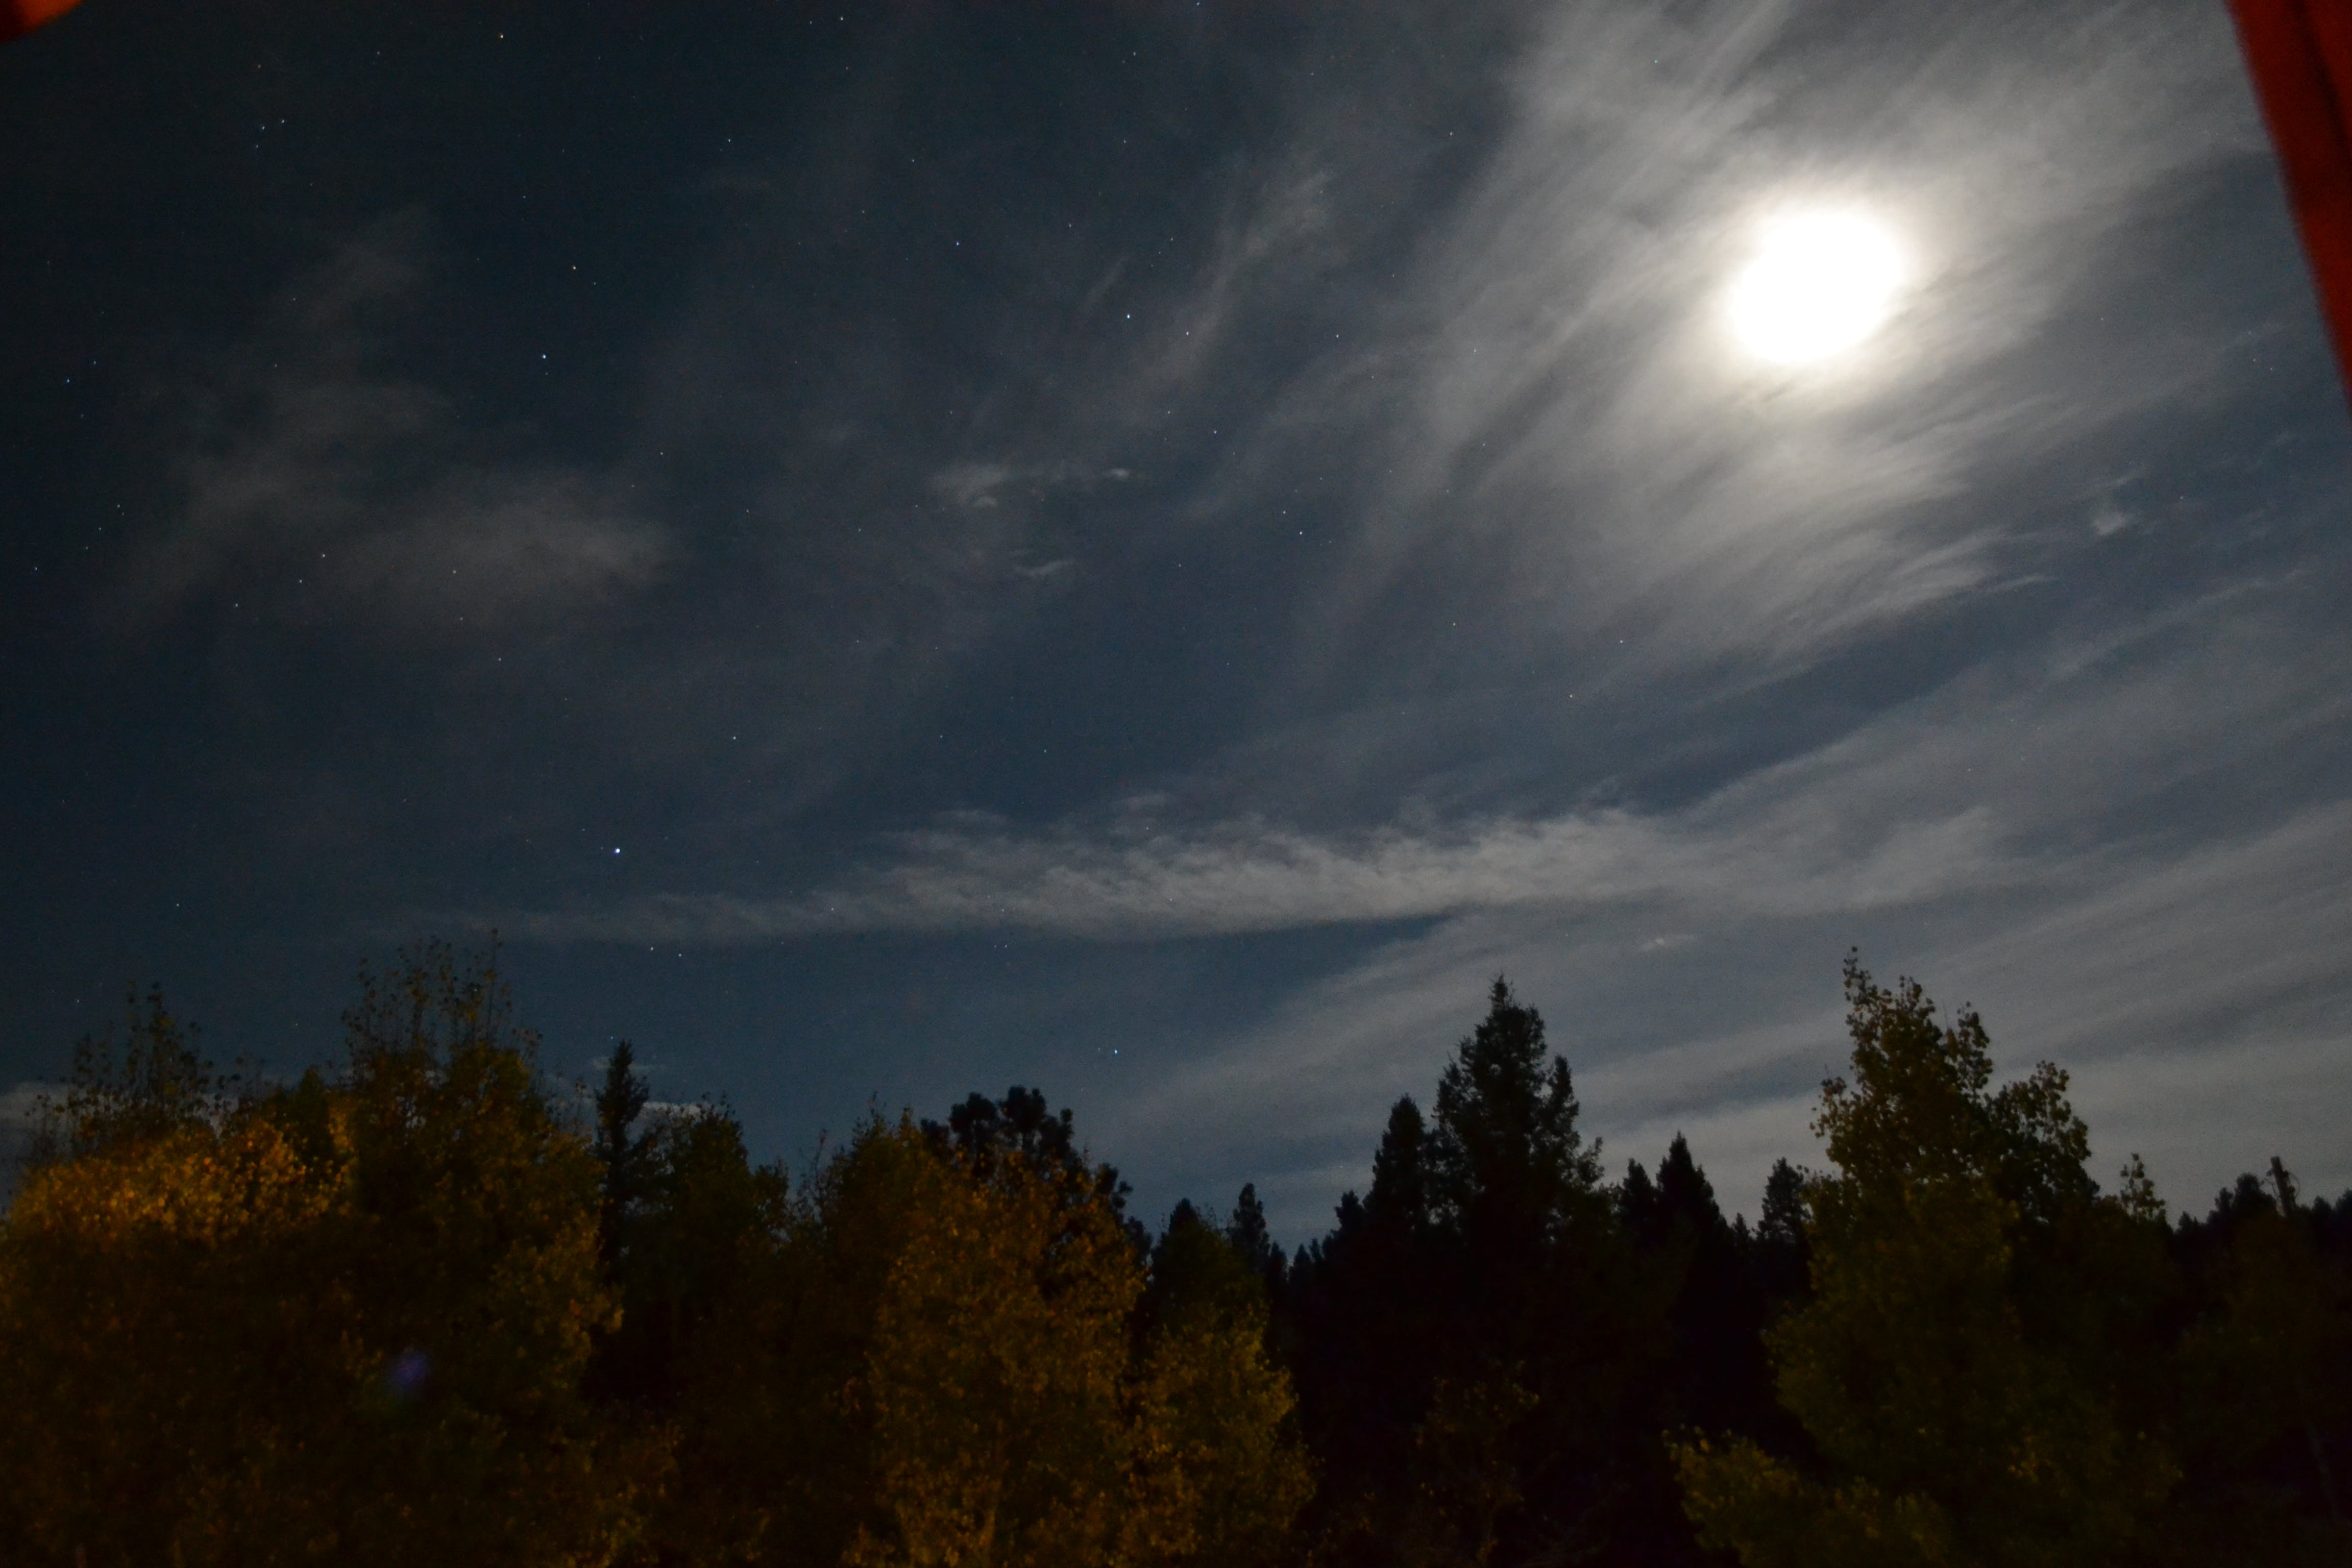 Free stock photo of night, clouds, trees, stars